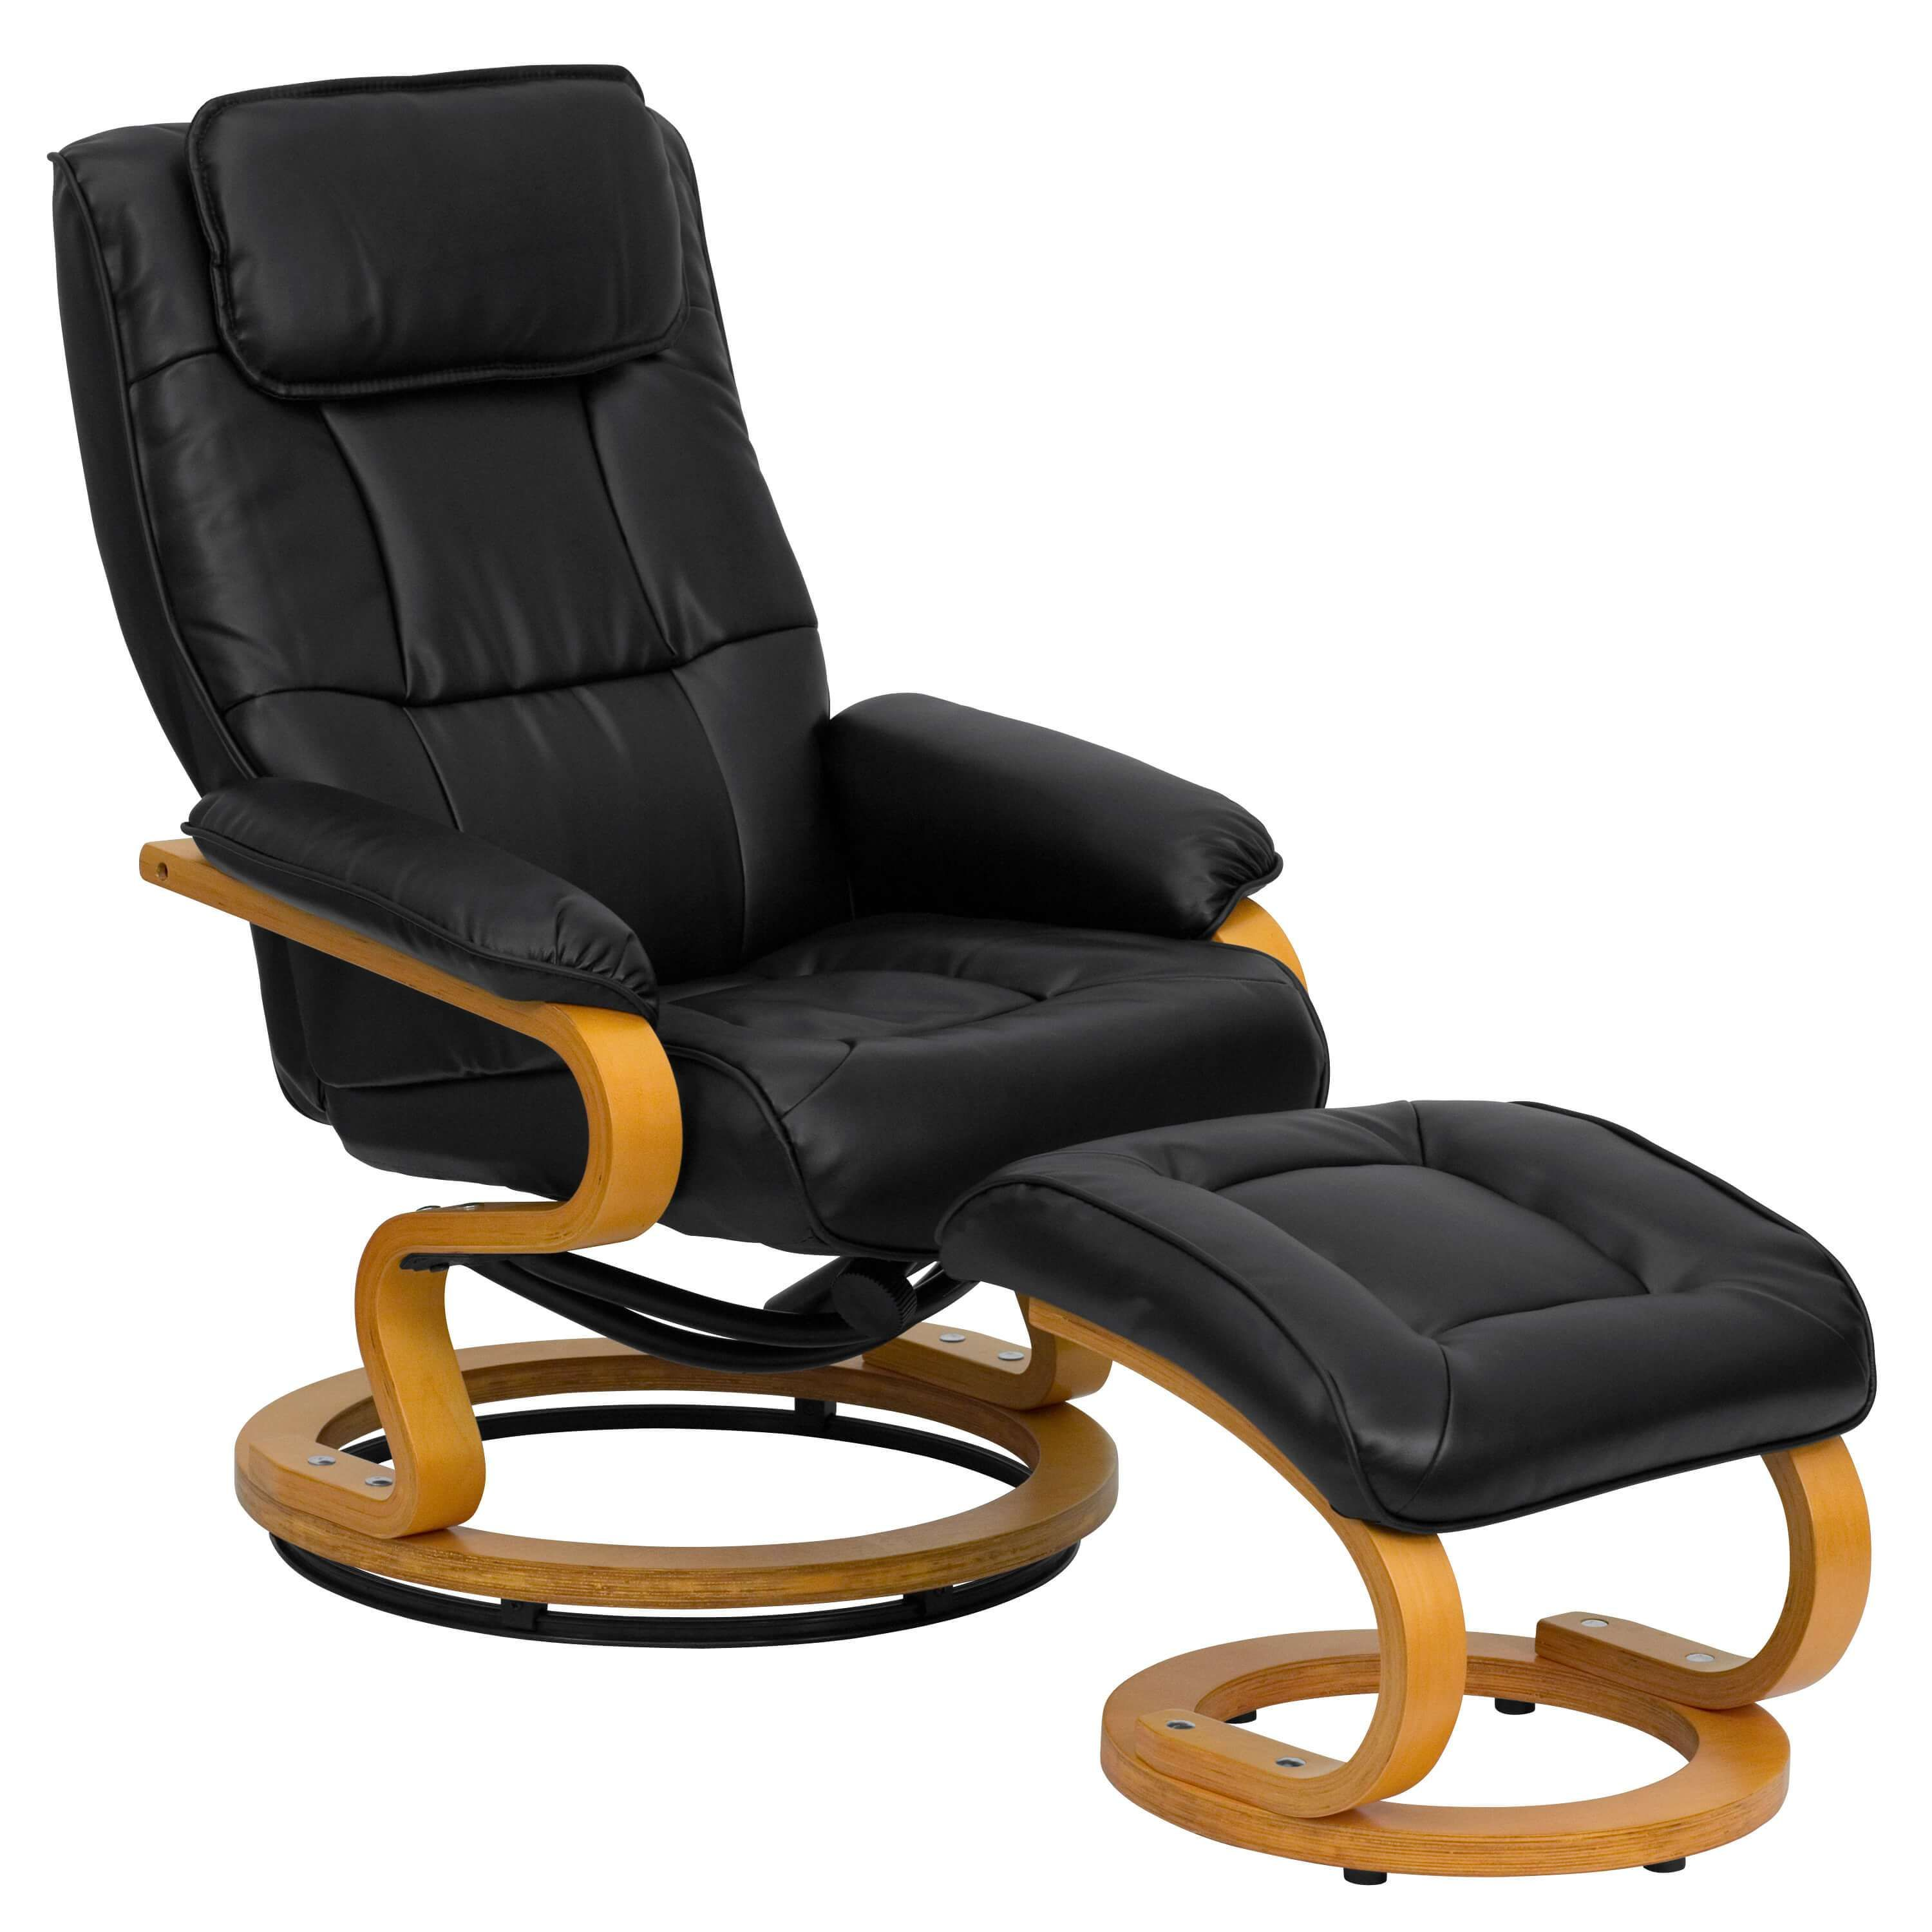 Fontana High Back Recliner Chair Brown Leather Recliner